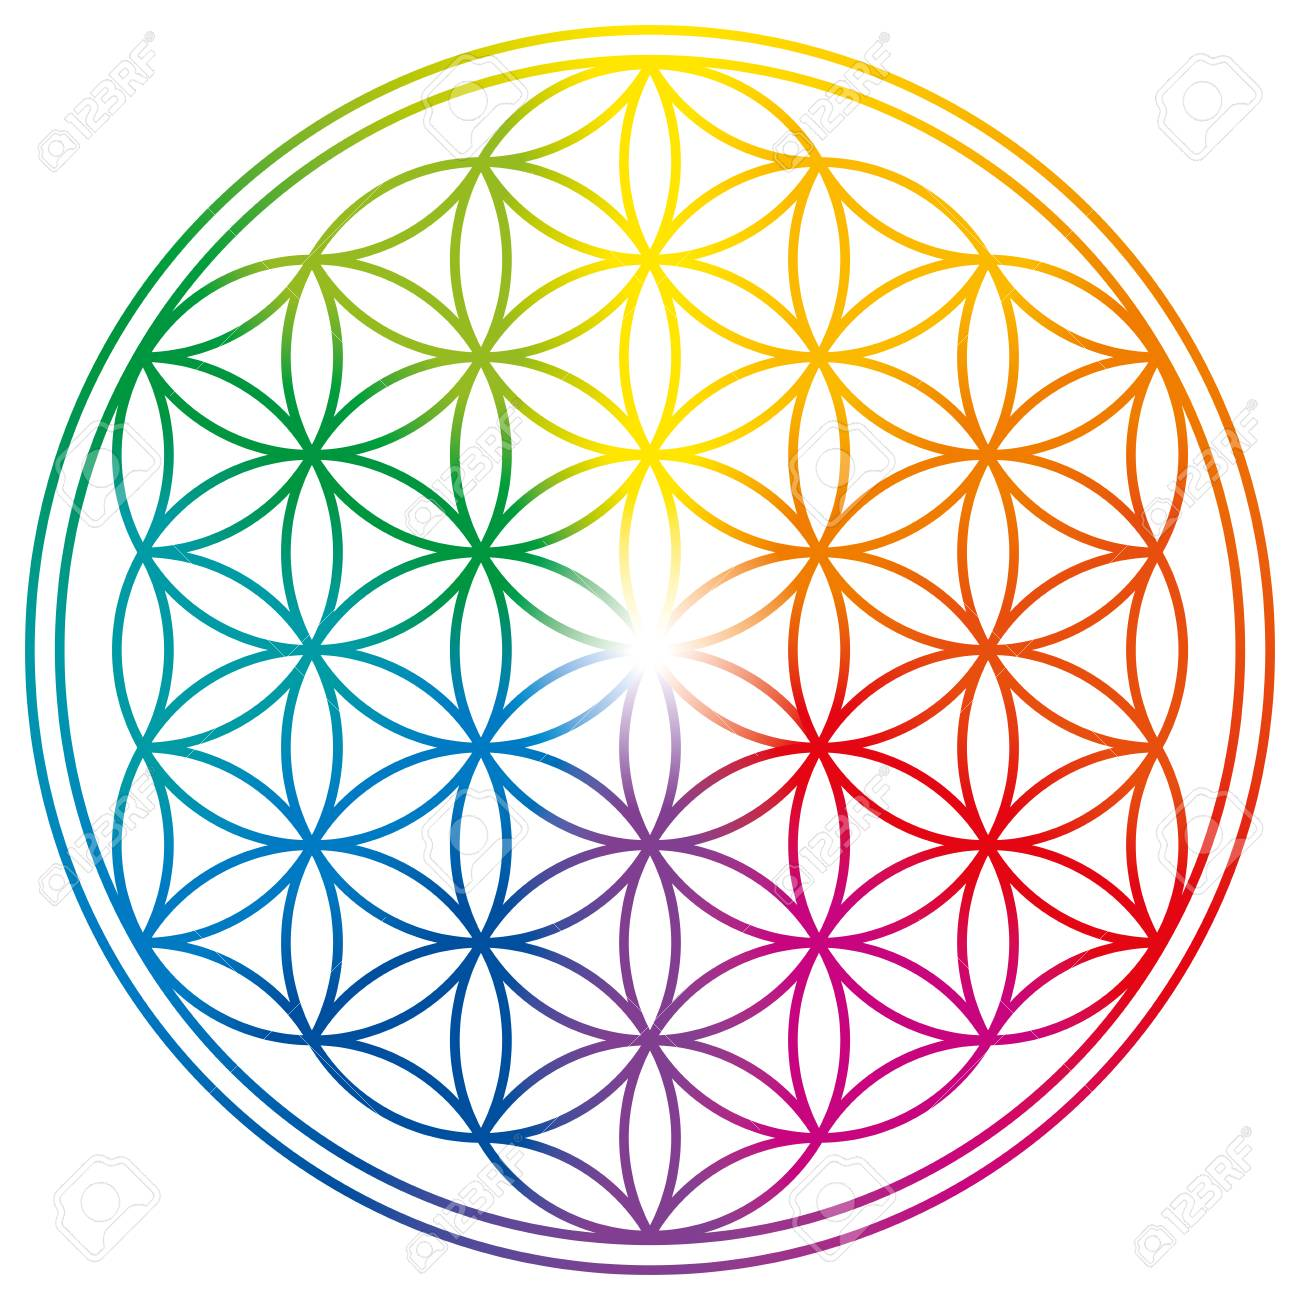 Flower of Life with rainbow gradients